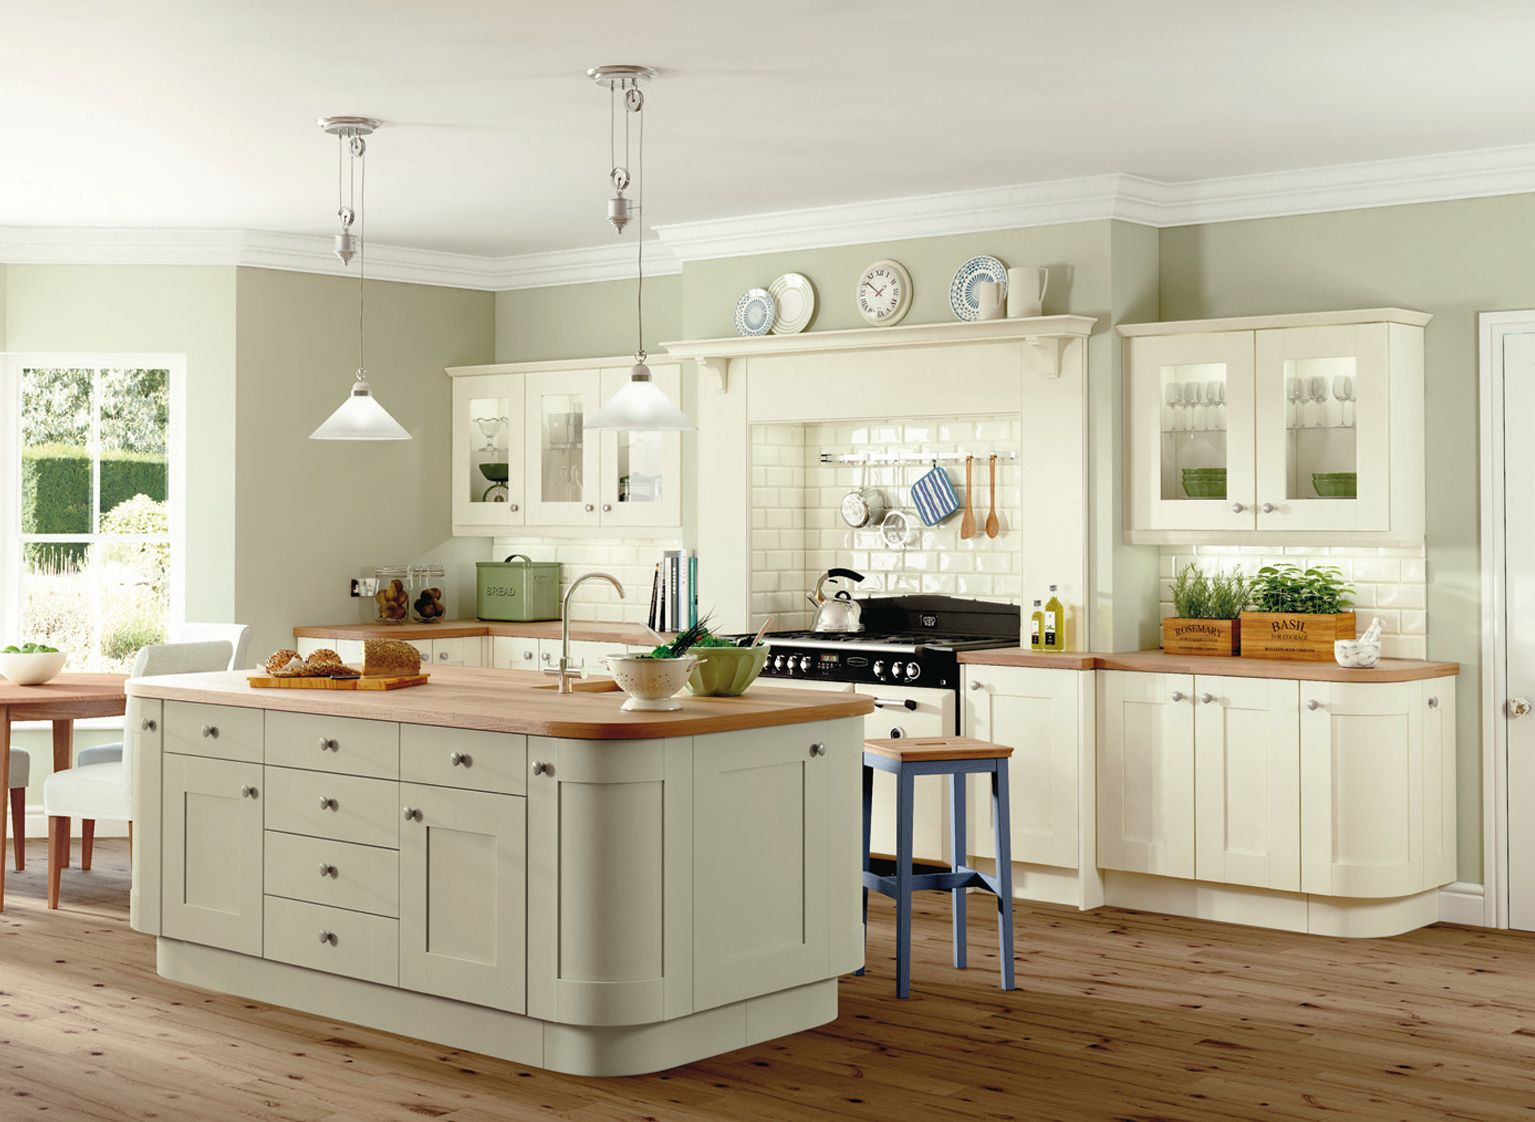 Symph-Rockford-ivory-and-sage-kitchen | Kitchens KCK Love ...